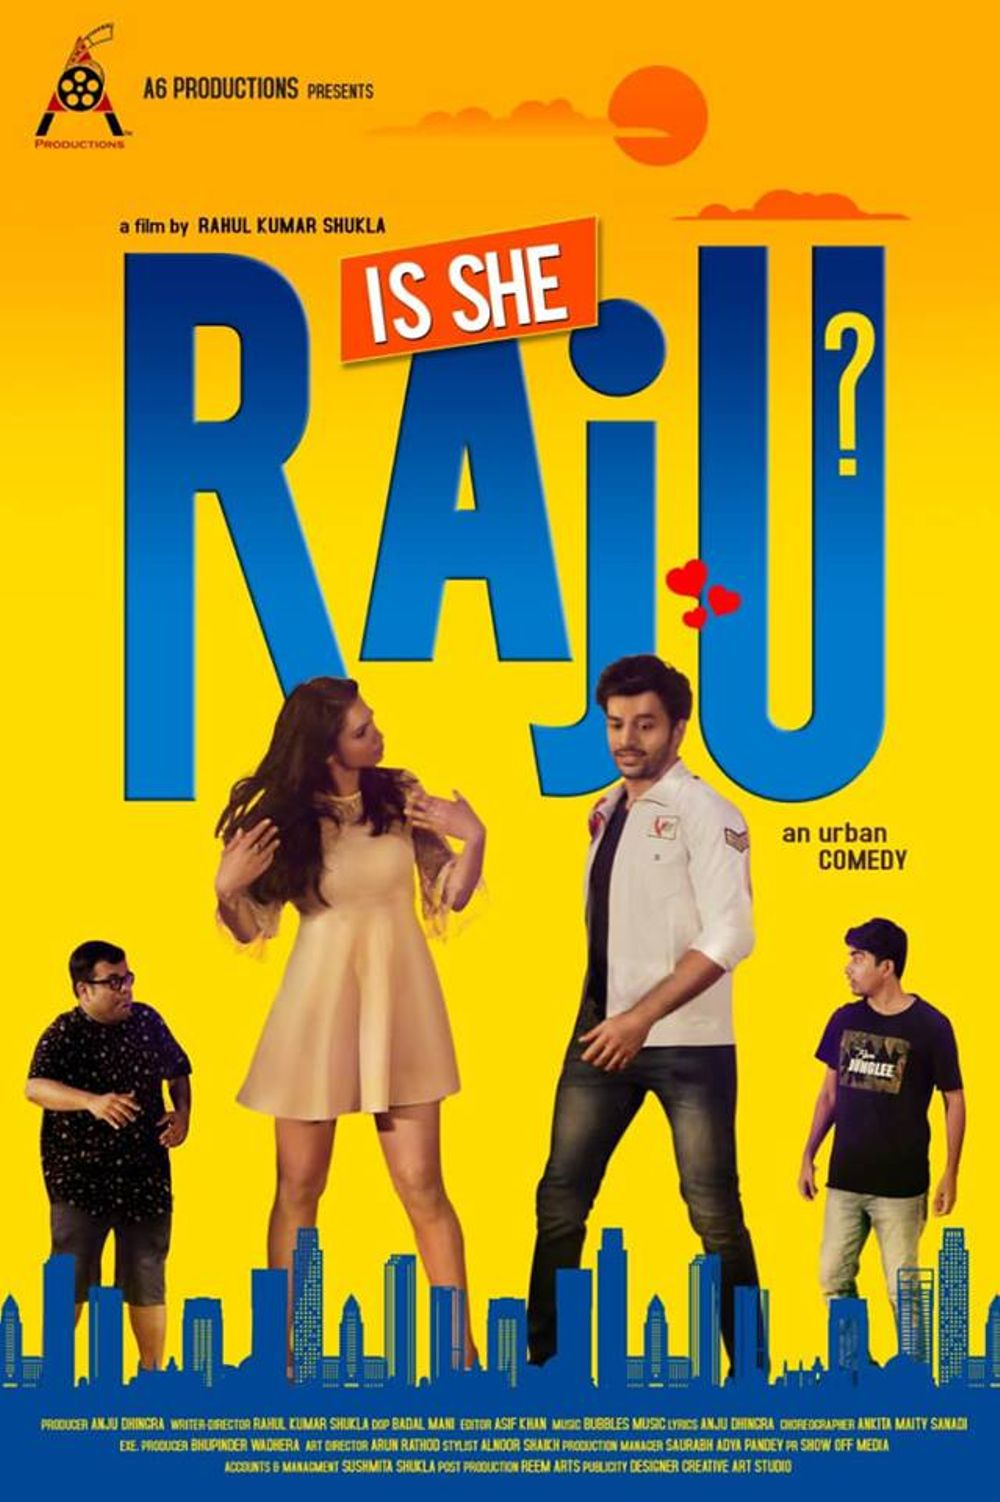 Is She Raju? Movie Review Hindi Movie Review